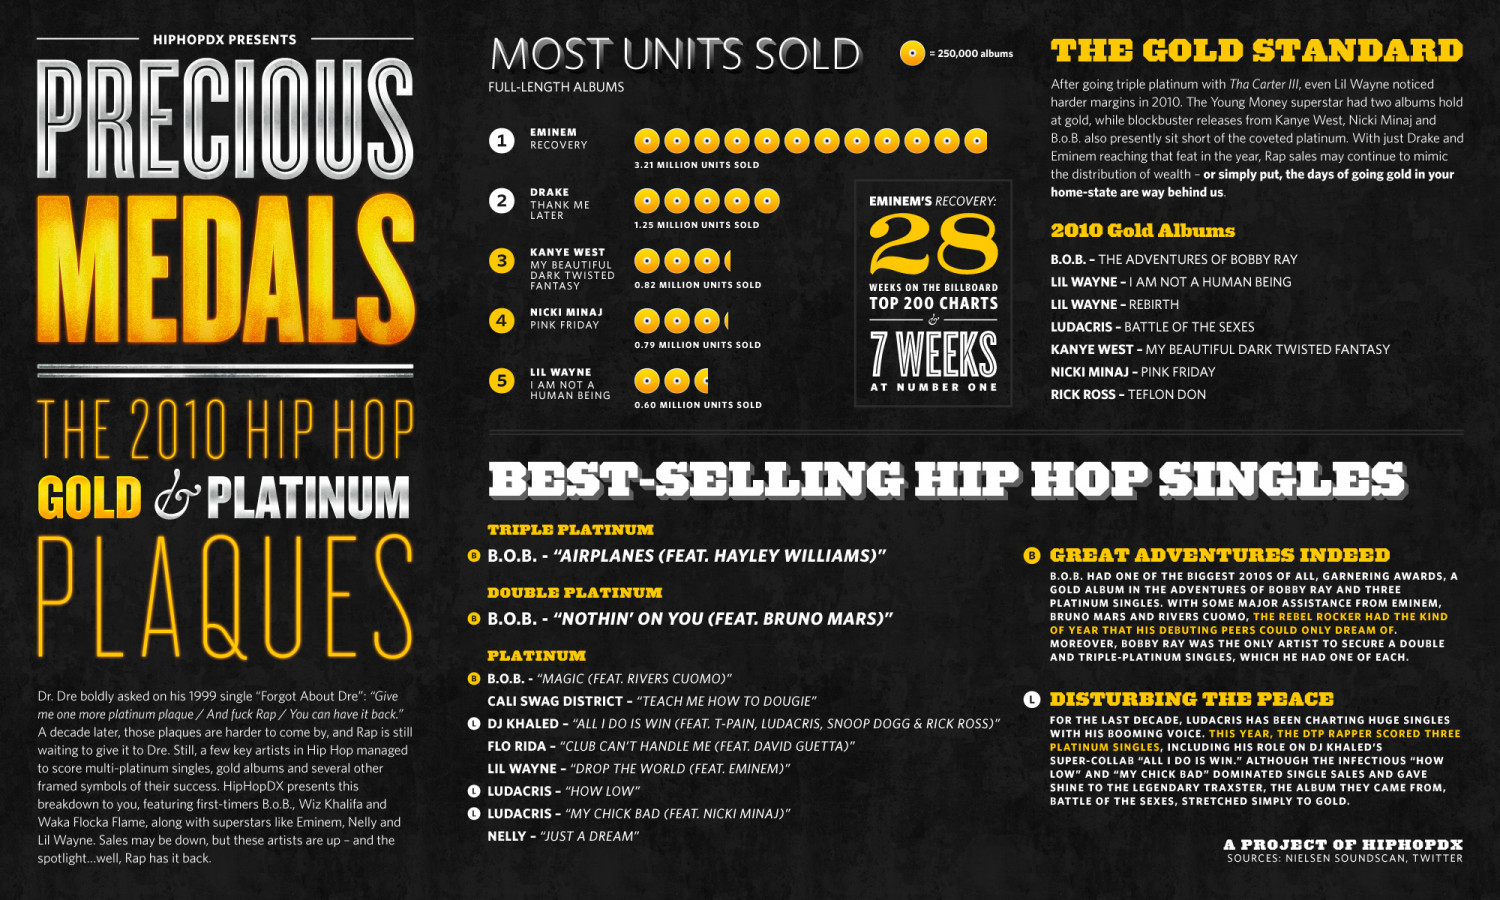 Precious Medals: The 2010 Hip Hop Gold and Platinum Plaques Infographic